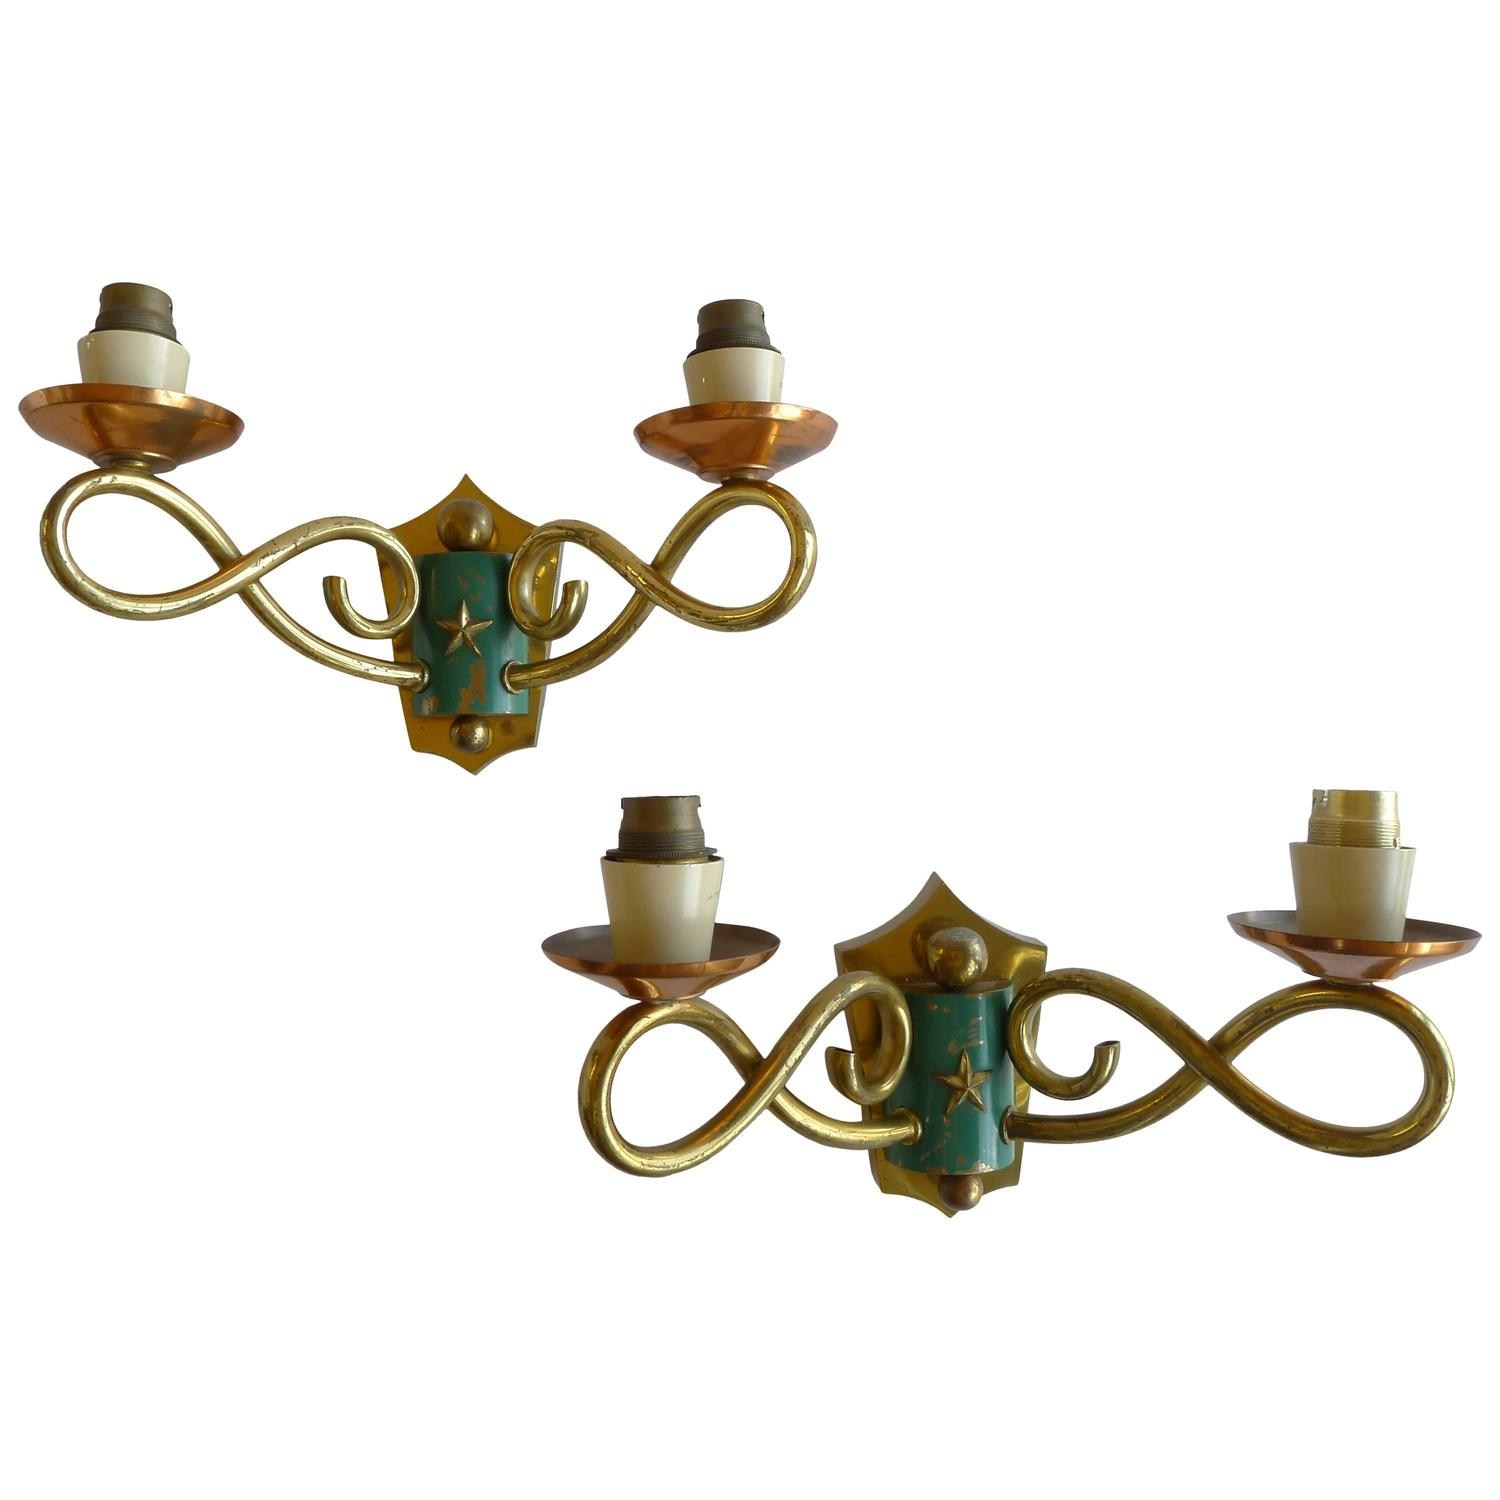 Brass Copper Wall Lights : 1930s French Regency Wall Sconces in Brass and Copper For Sale at 1stdibs